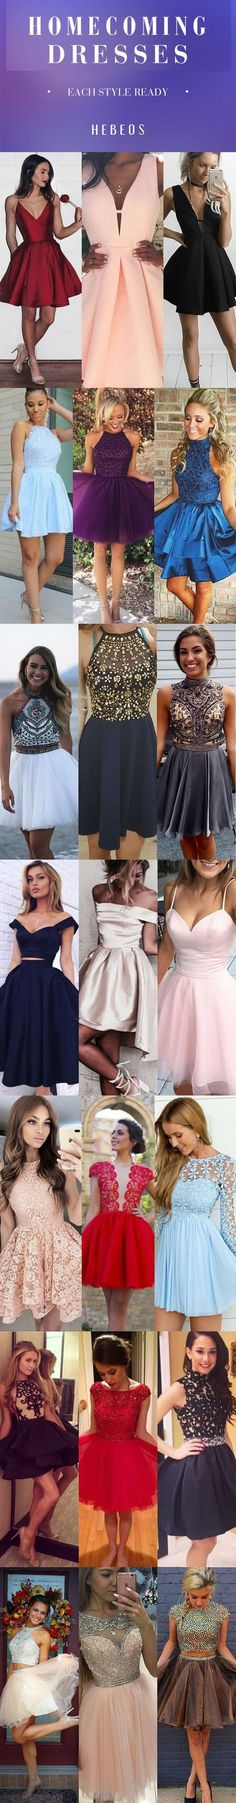 Buy the latest Homecoming Dresses For cheap prices, We carry the latest trends in Homecoming Dresses to show off that fun and flirty style of yours. Homecoming Outfits, Cheap Homecoming Dresses, Hoco Dresses, Event Dresses, Dance Dresses, Ball Dresses, Pretty Dresses, Beautiful Dresses, Year 10 Formal Dresses